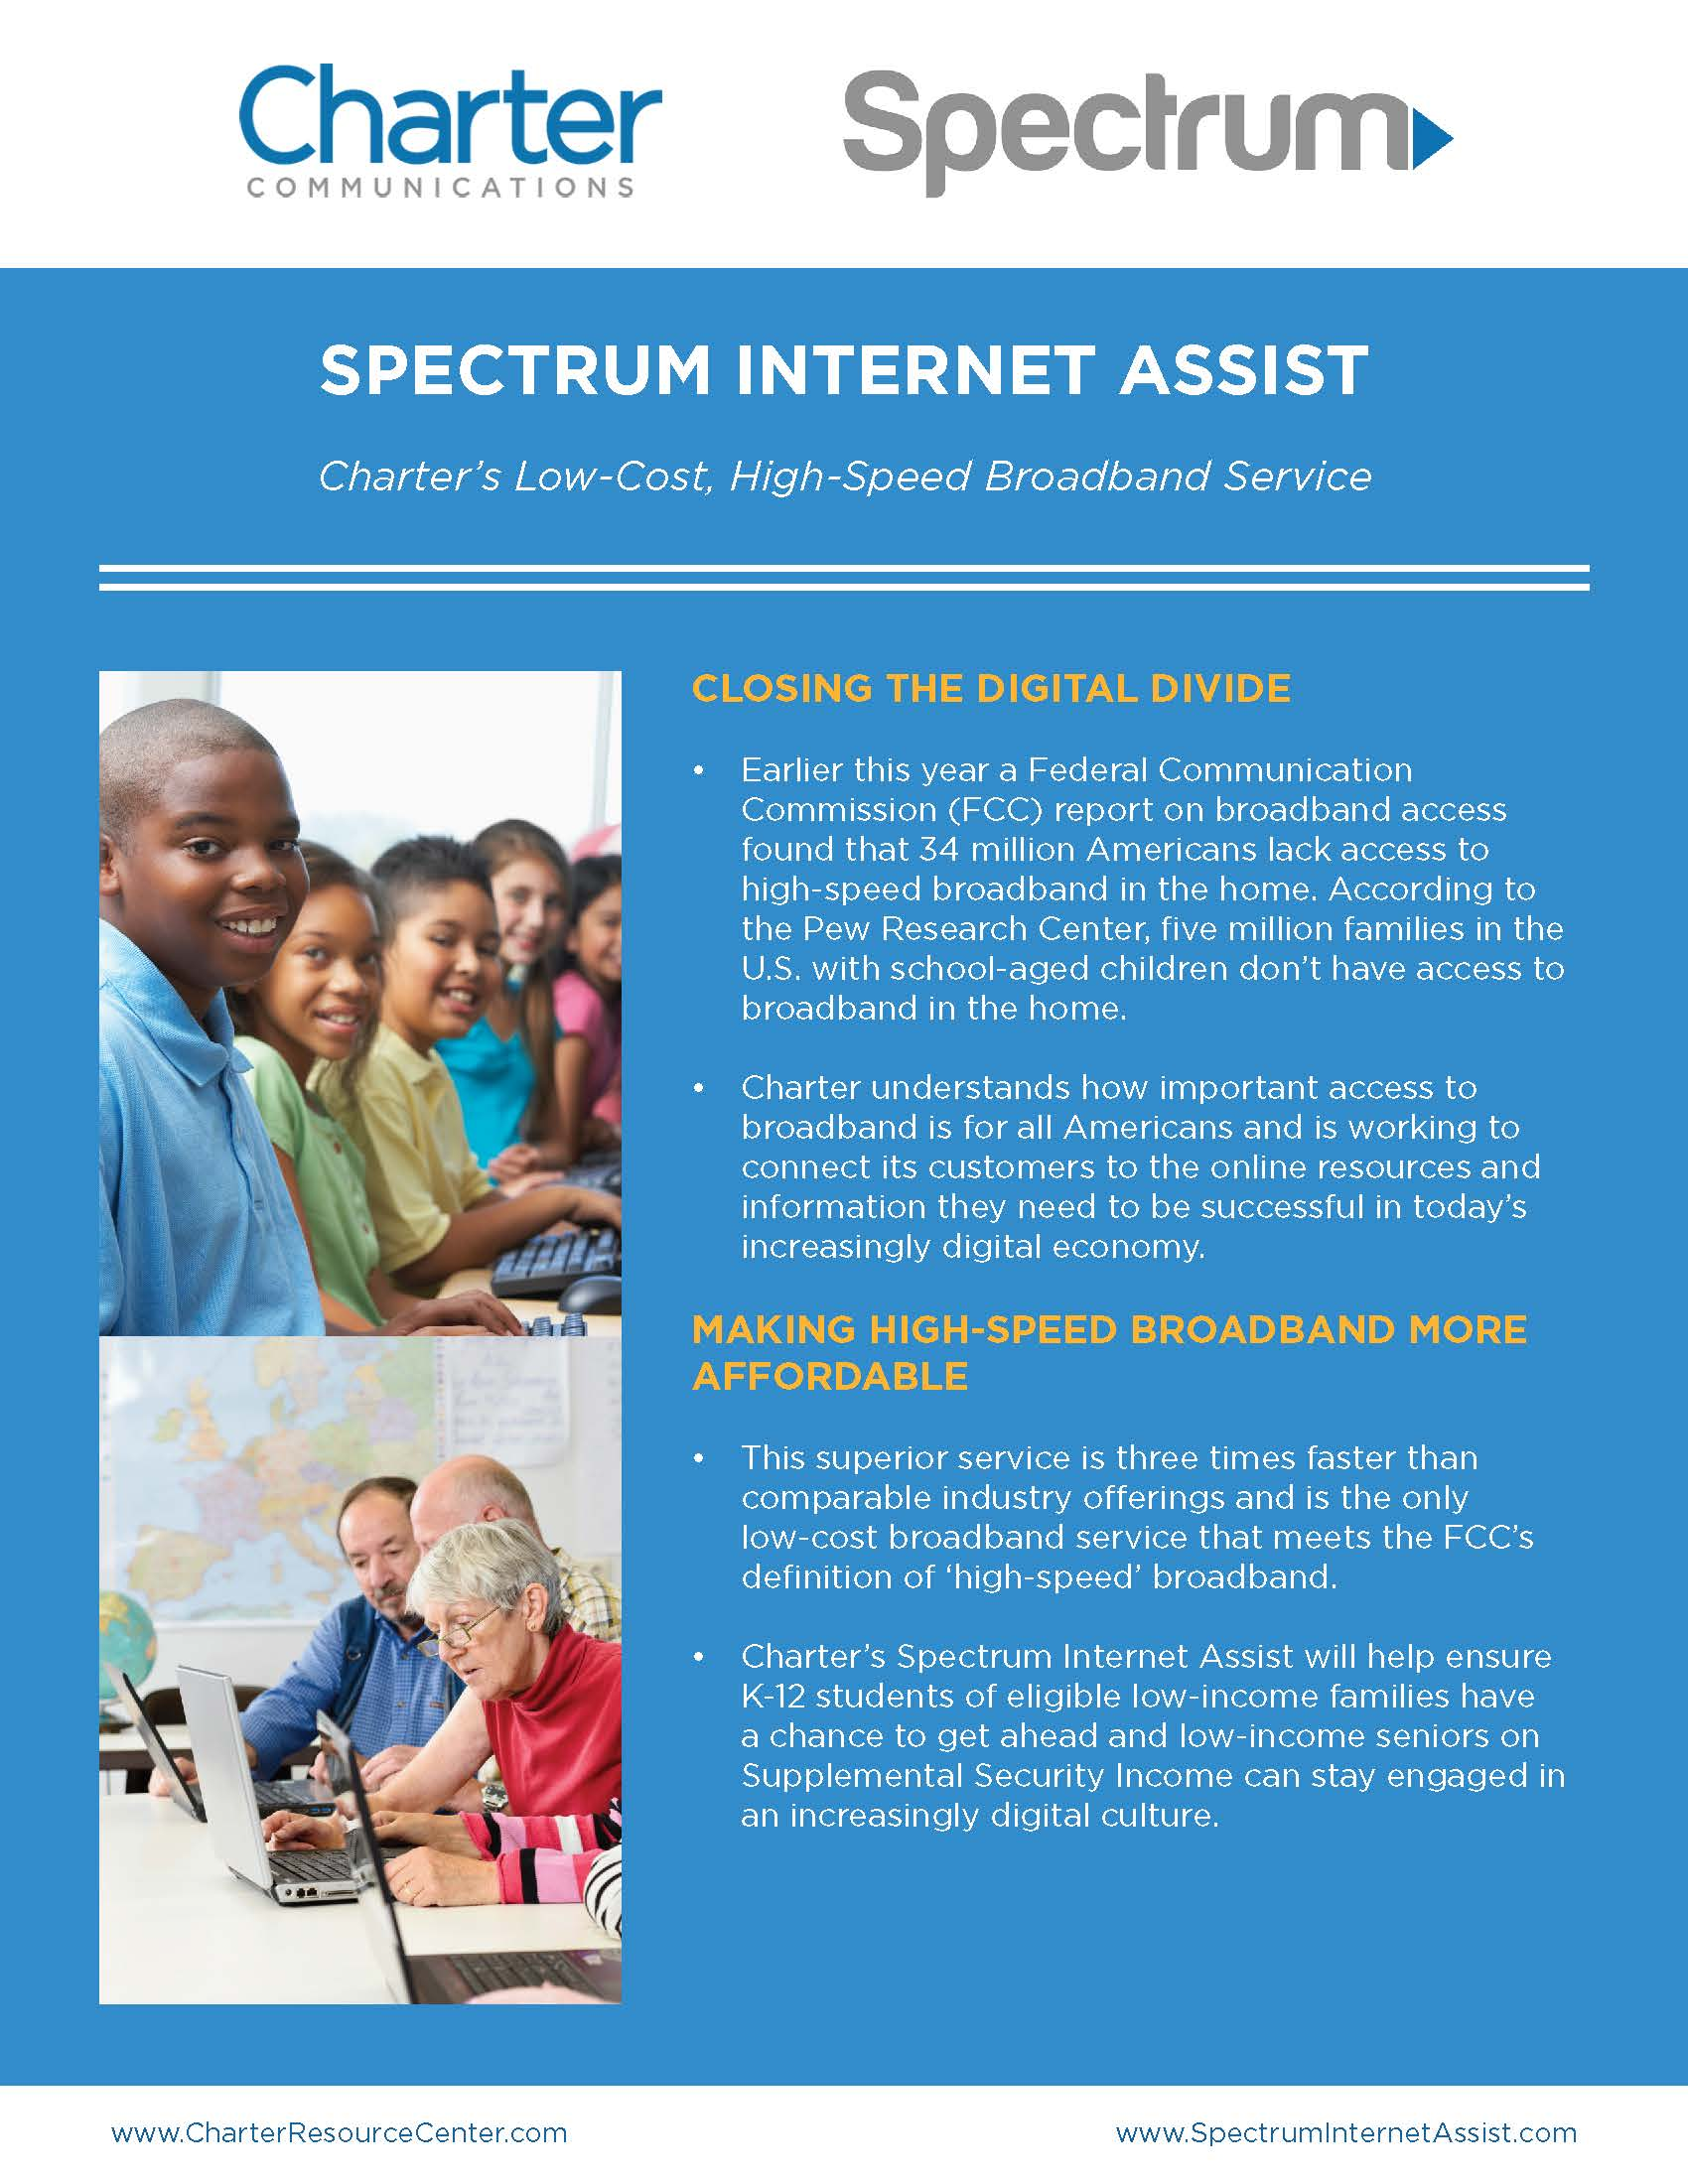 Spectrum - low cost internet information for qualifying families